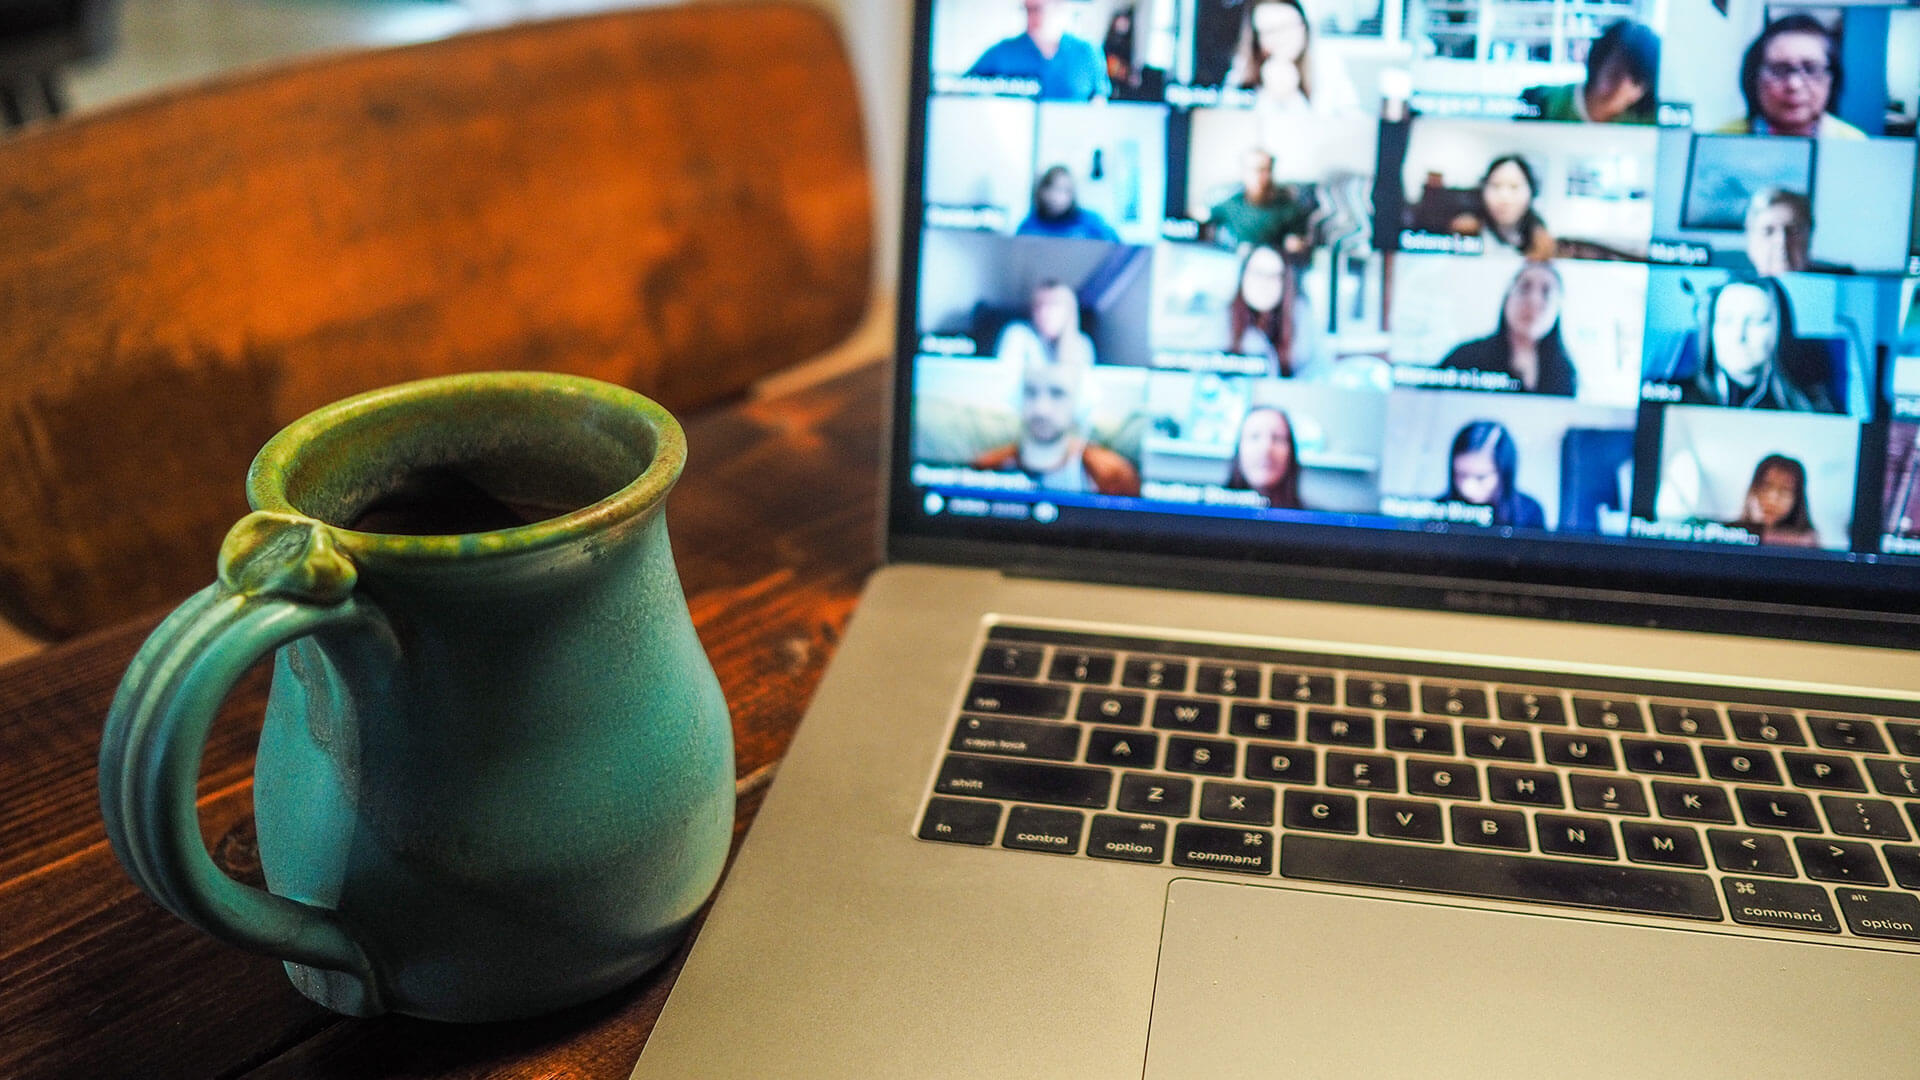 A mug next to a laptop with users in a group chat.